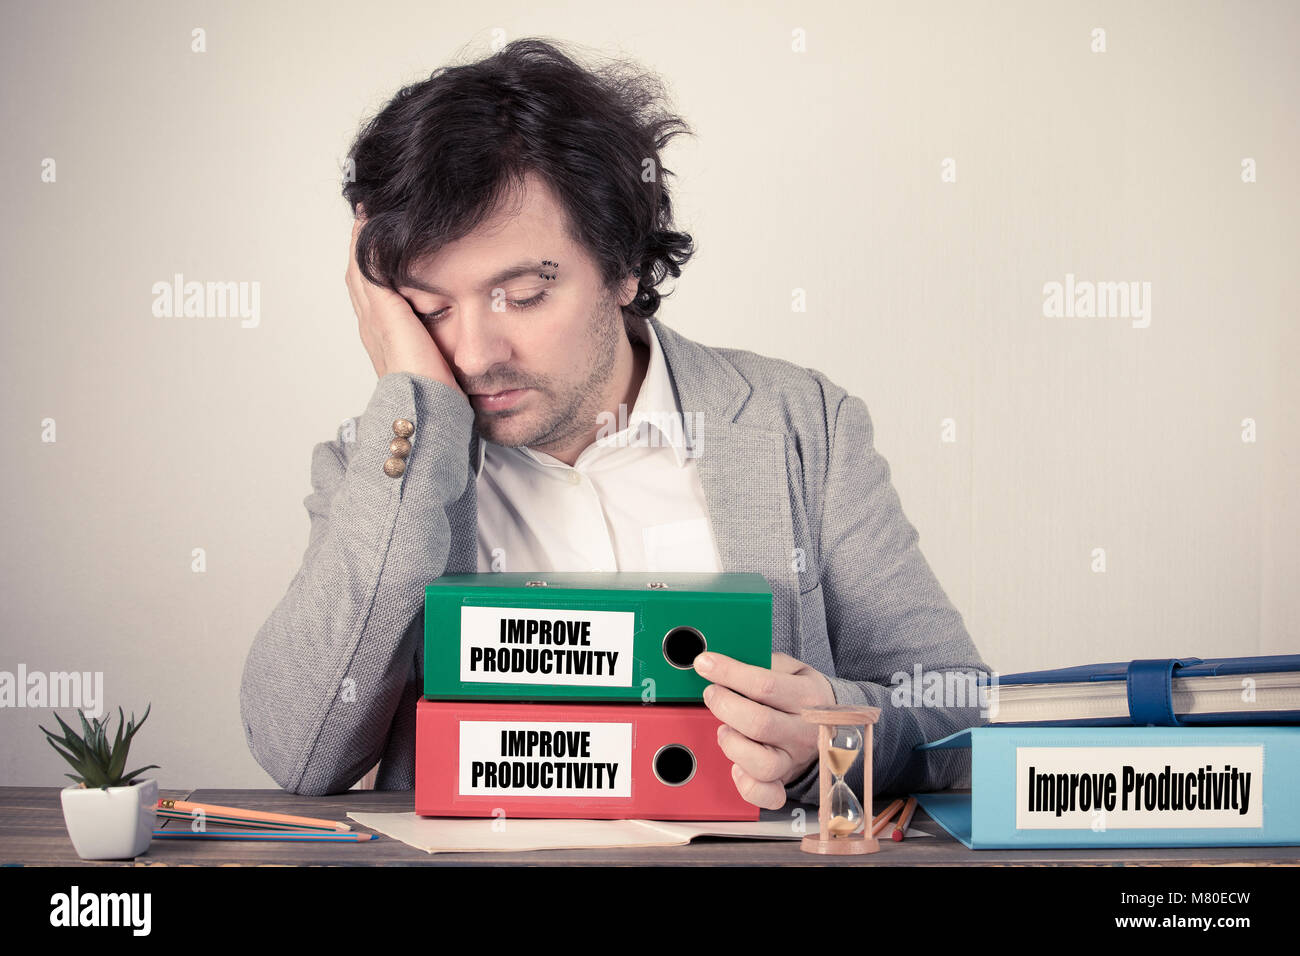 Improve Productivity text on the binders, worried bussinesman thinking by the work desk - Stock Image